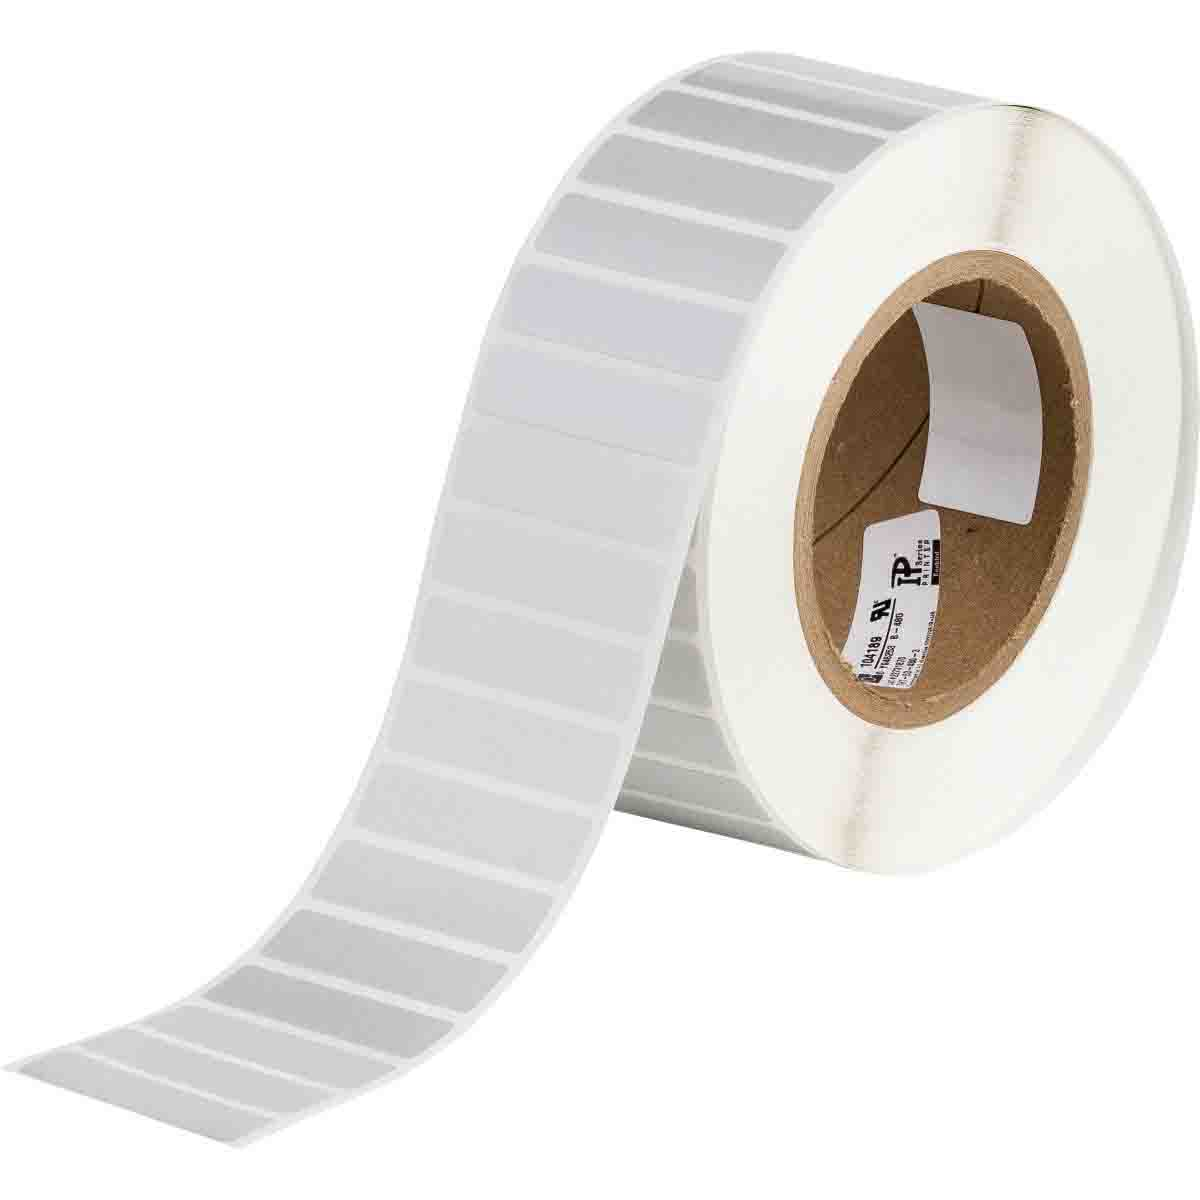 10,000 Labels per Roll, 1 Roll per Package Brady THT-12-438-10 Tamper-Evident Metallized Polyester Thermal Transfer Printable Labels Silver